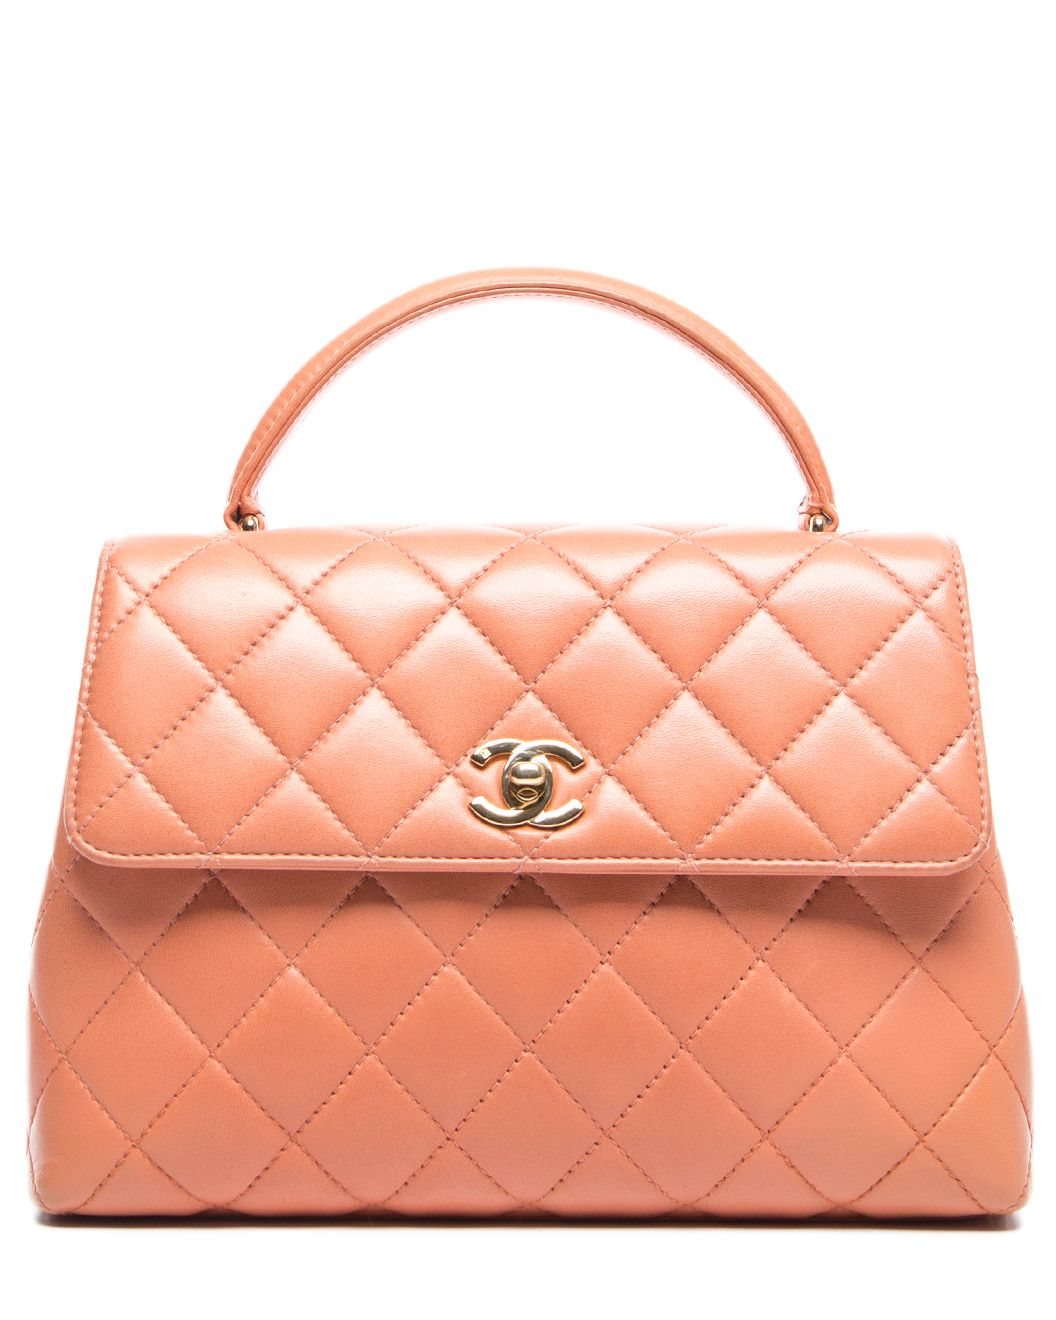 b8d685e98471 Spotted this Chanel Salmon Pink Quilted Lambskin Small Kelly Flap Bag on  Rue La La. Shop (quickly!)